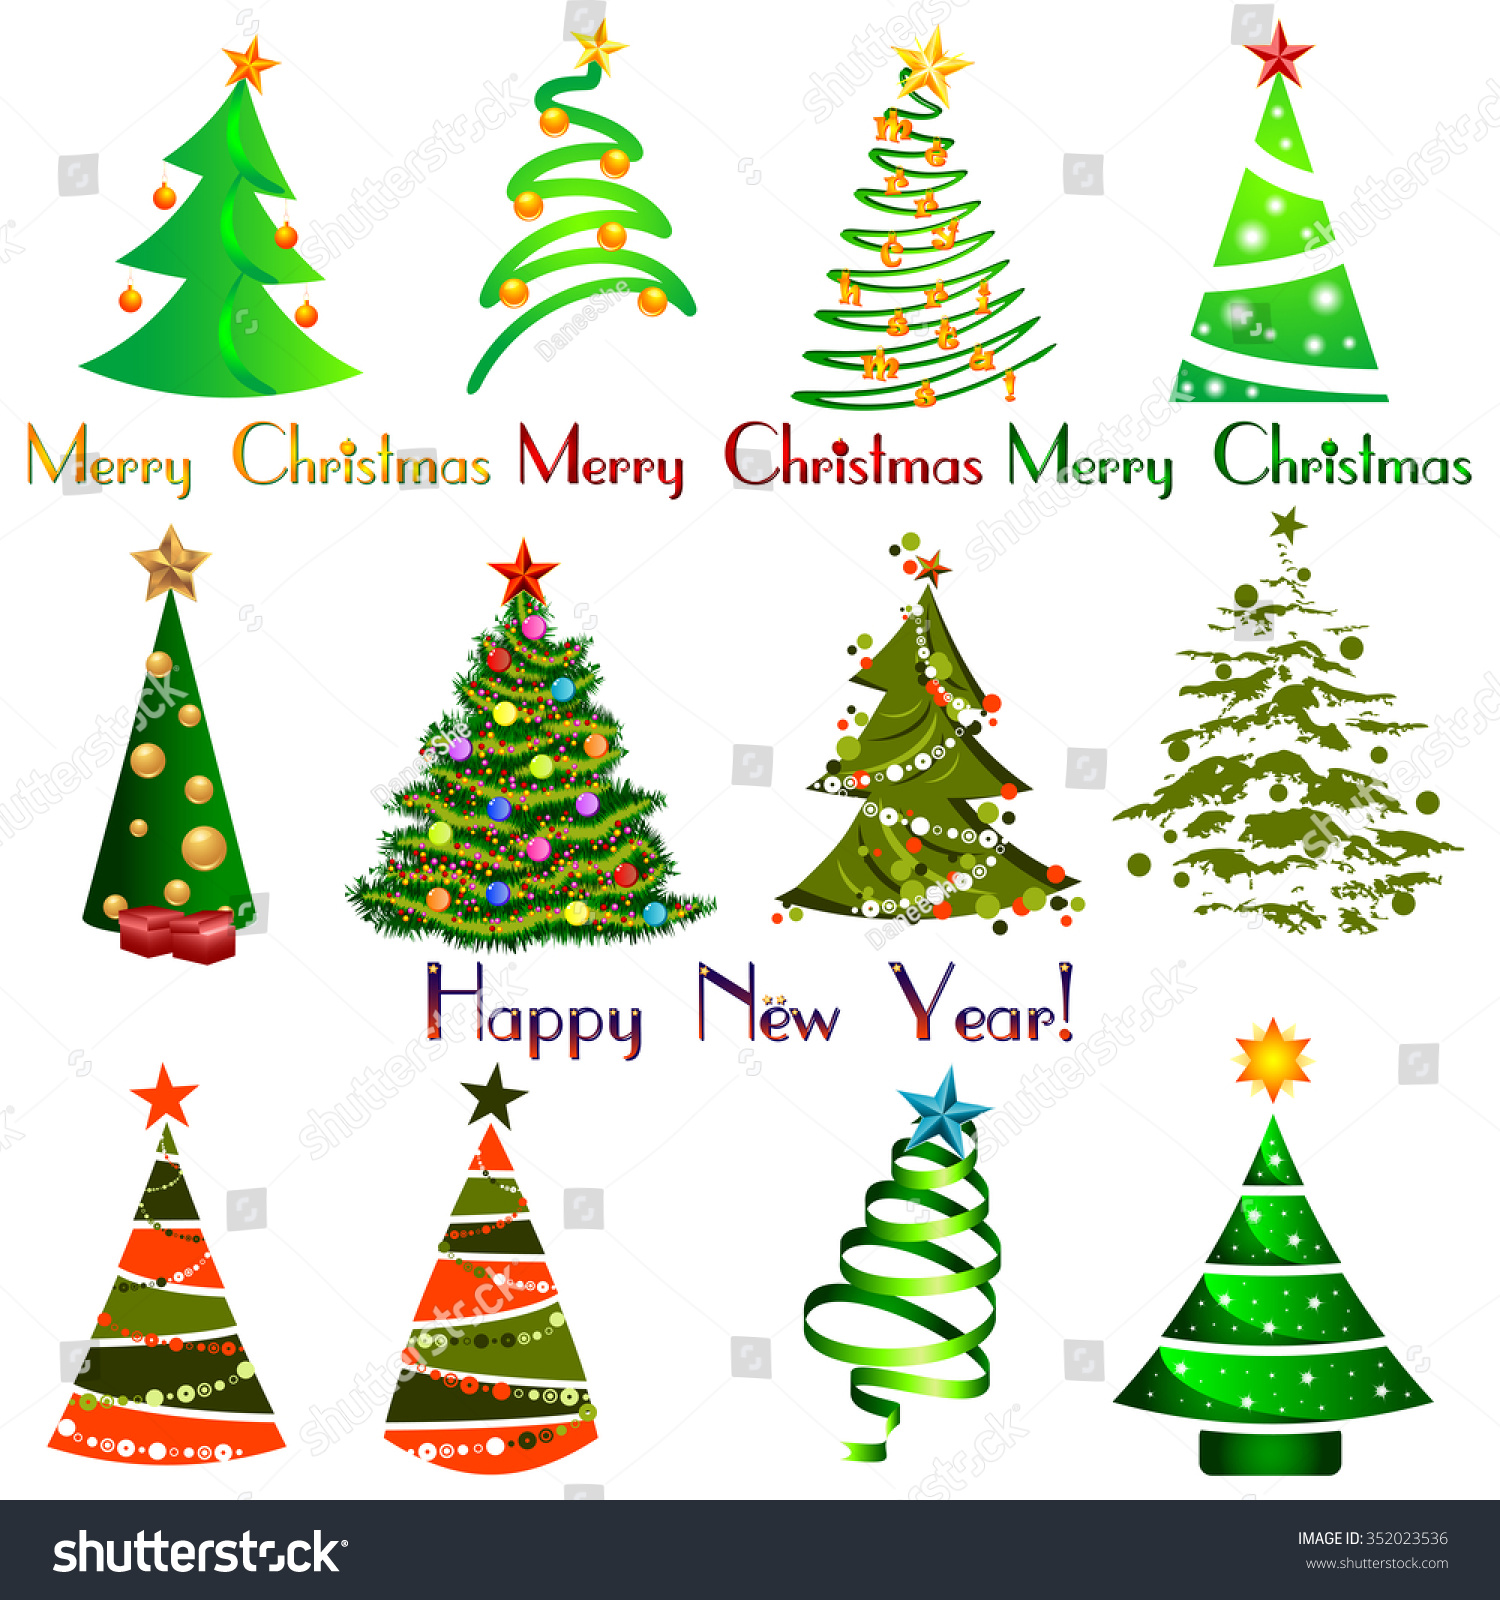 Set Different Elegant Christmas Trees Design Stock Vector (Royalty ...